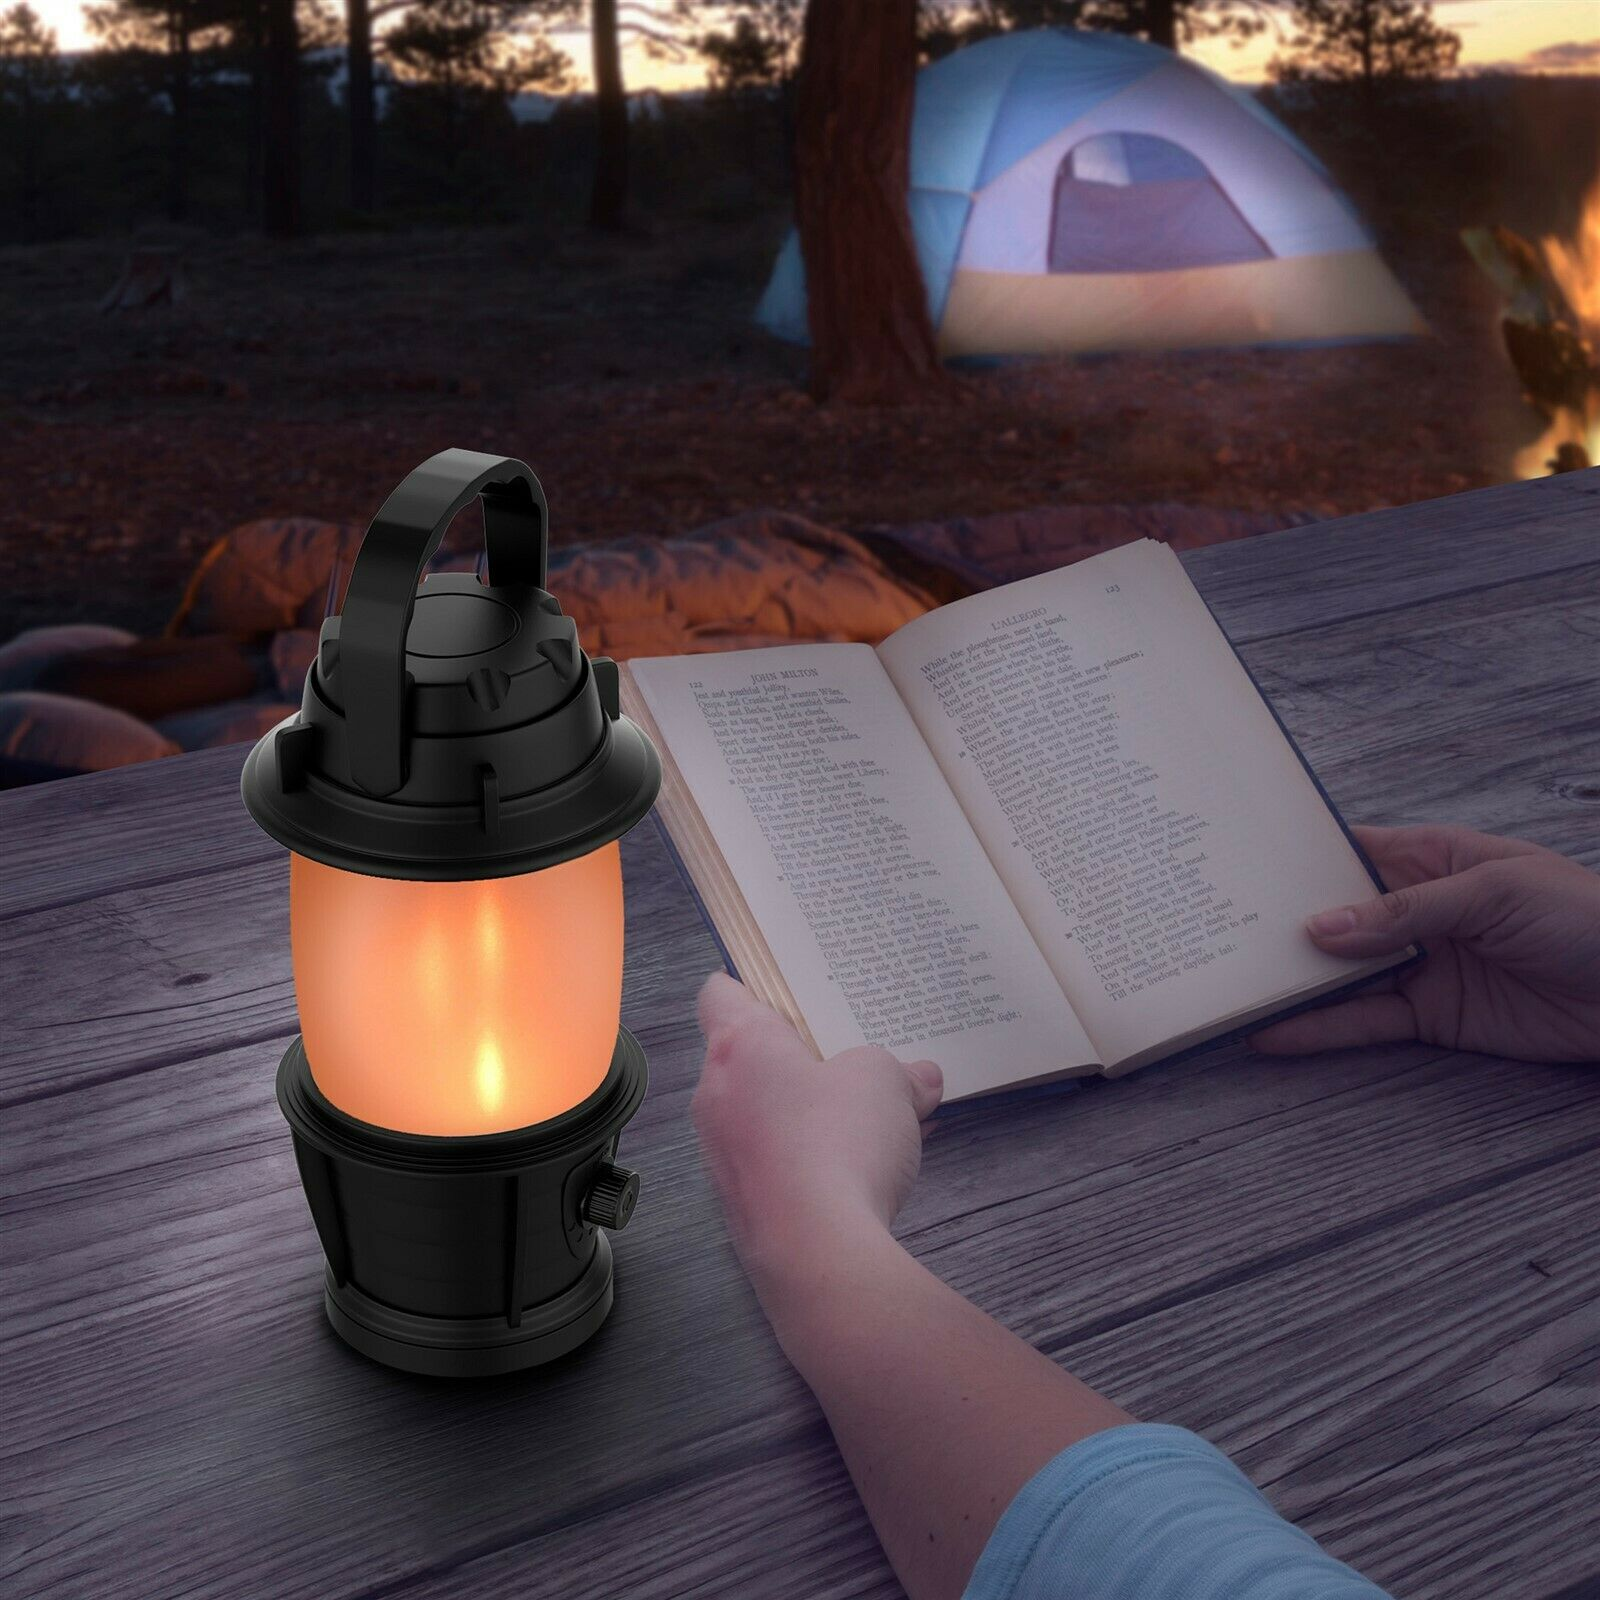 Light Torch Lantern Camping Battery 3 Led Operated Flame Effect Aaa Flickering dCxtsrhQ